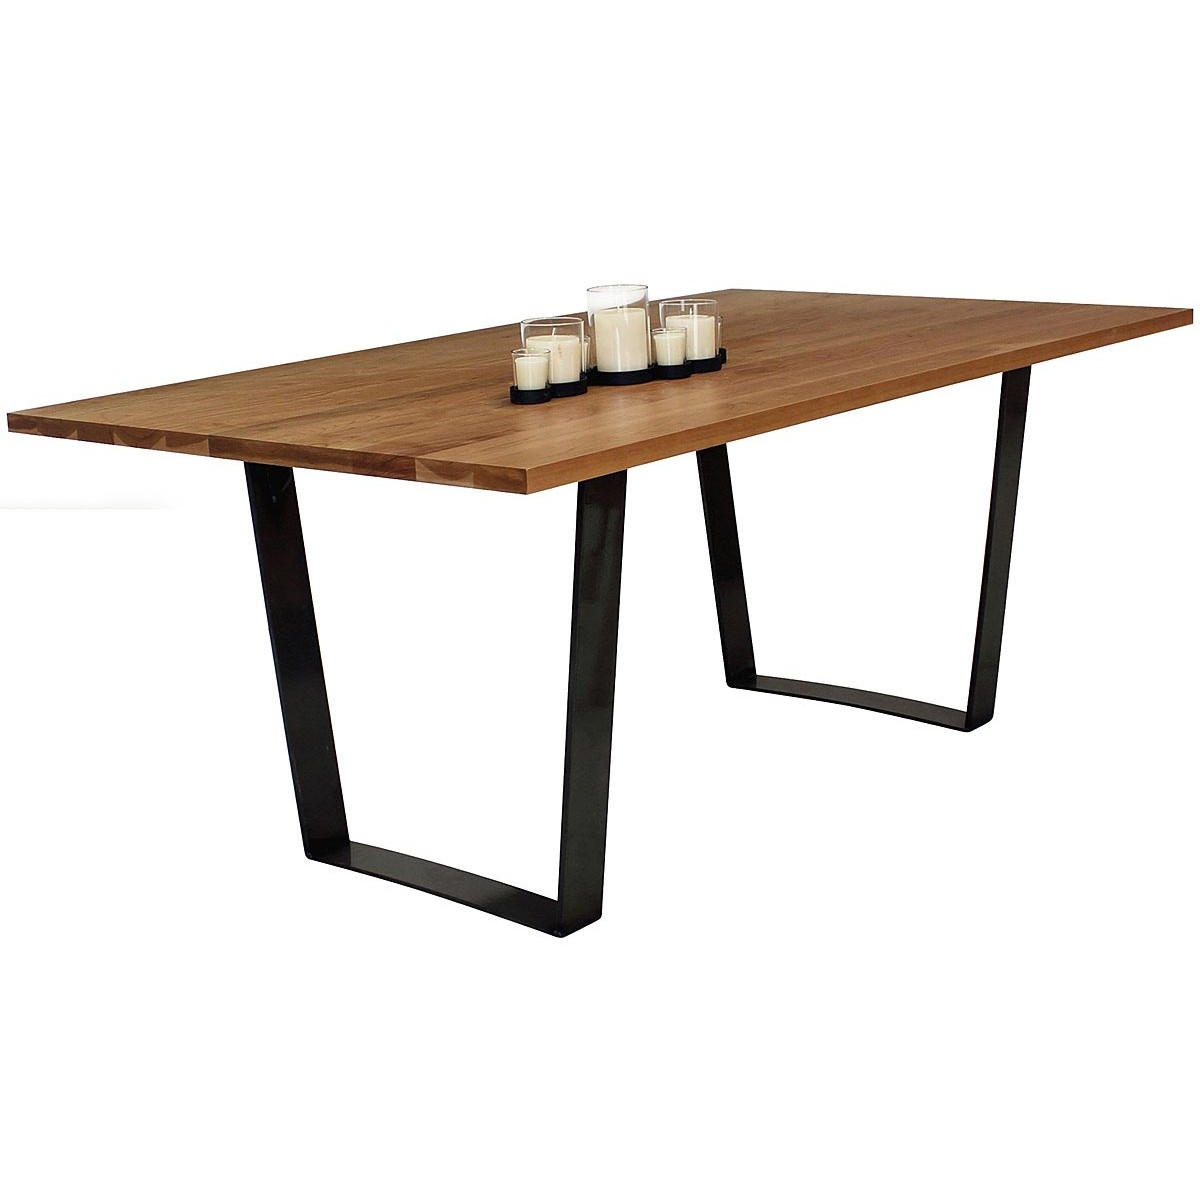 Lyndon Vergennes Dining Table 36x72 from $1 625 00 by Lyndon